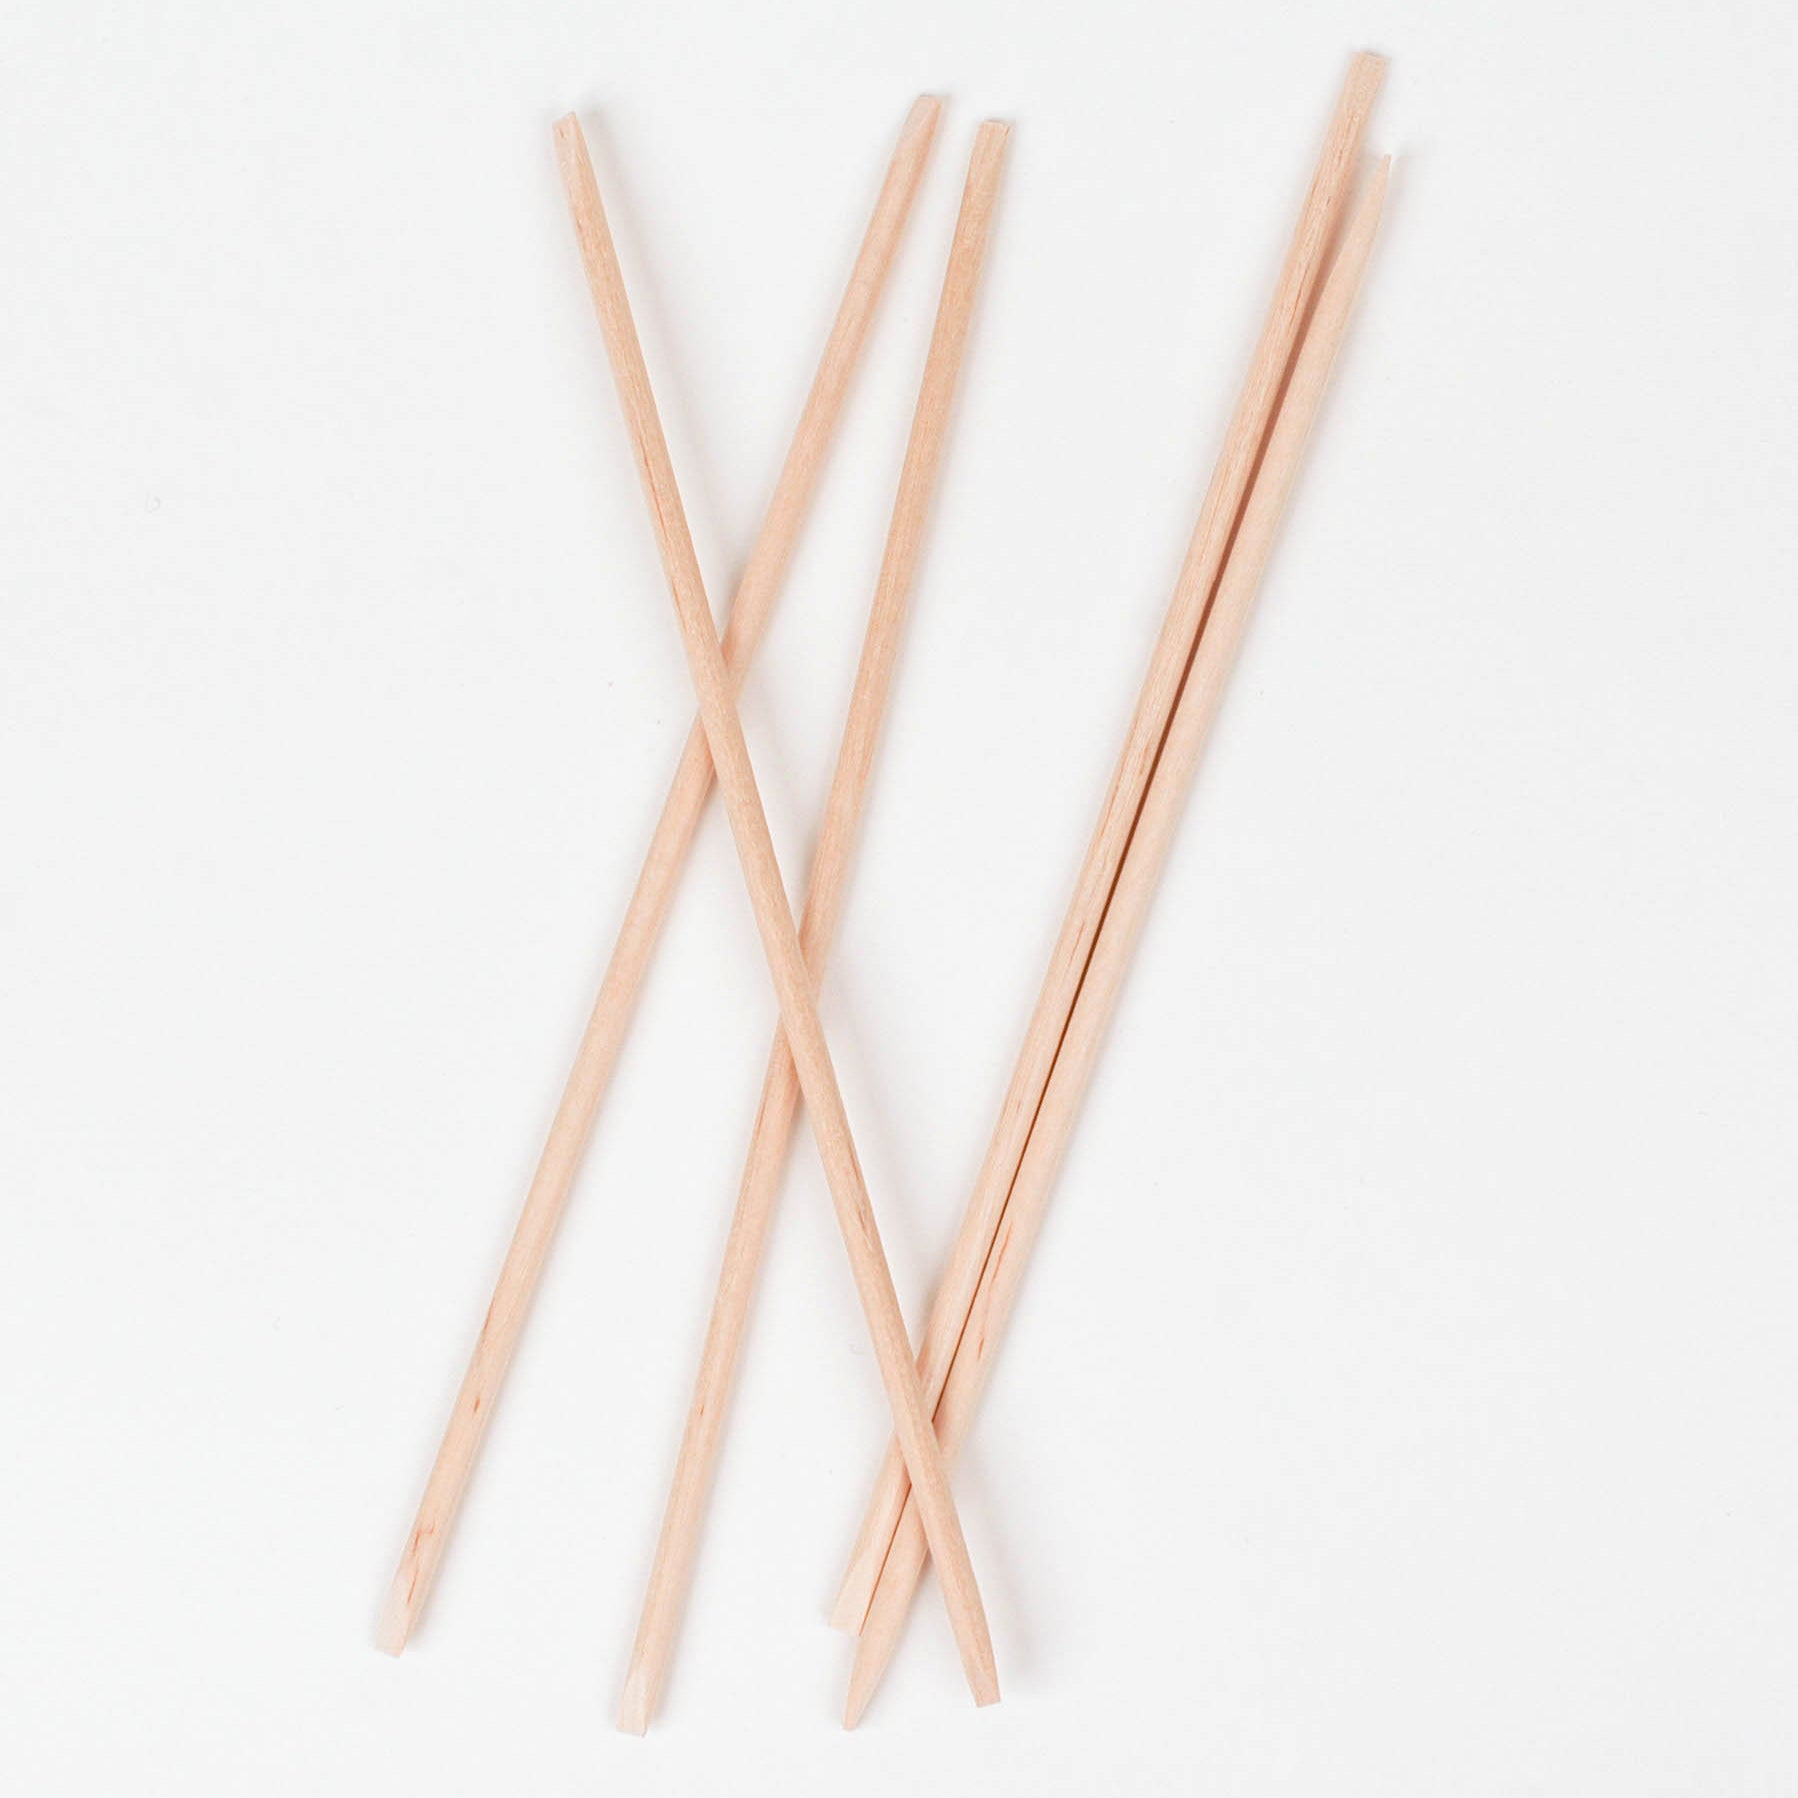 ORANGE WOOD STICKS Cuticle & Nail Tool